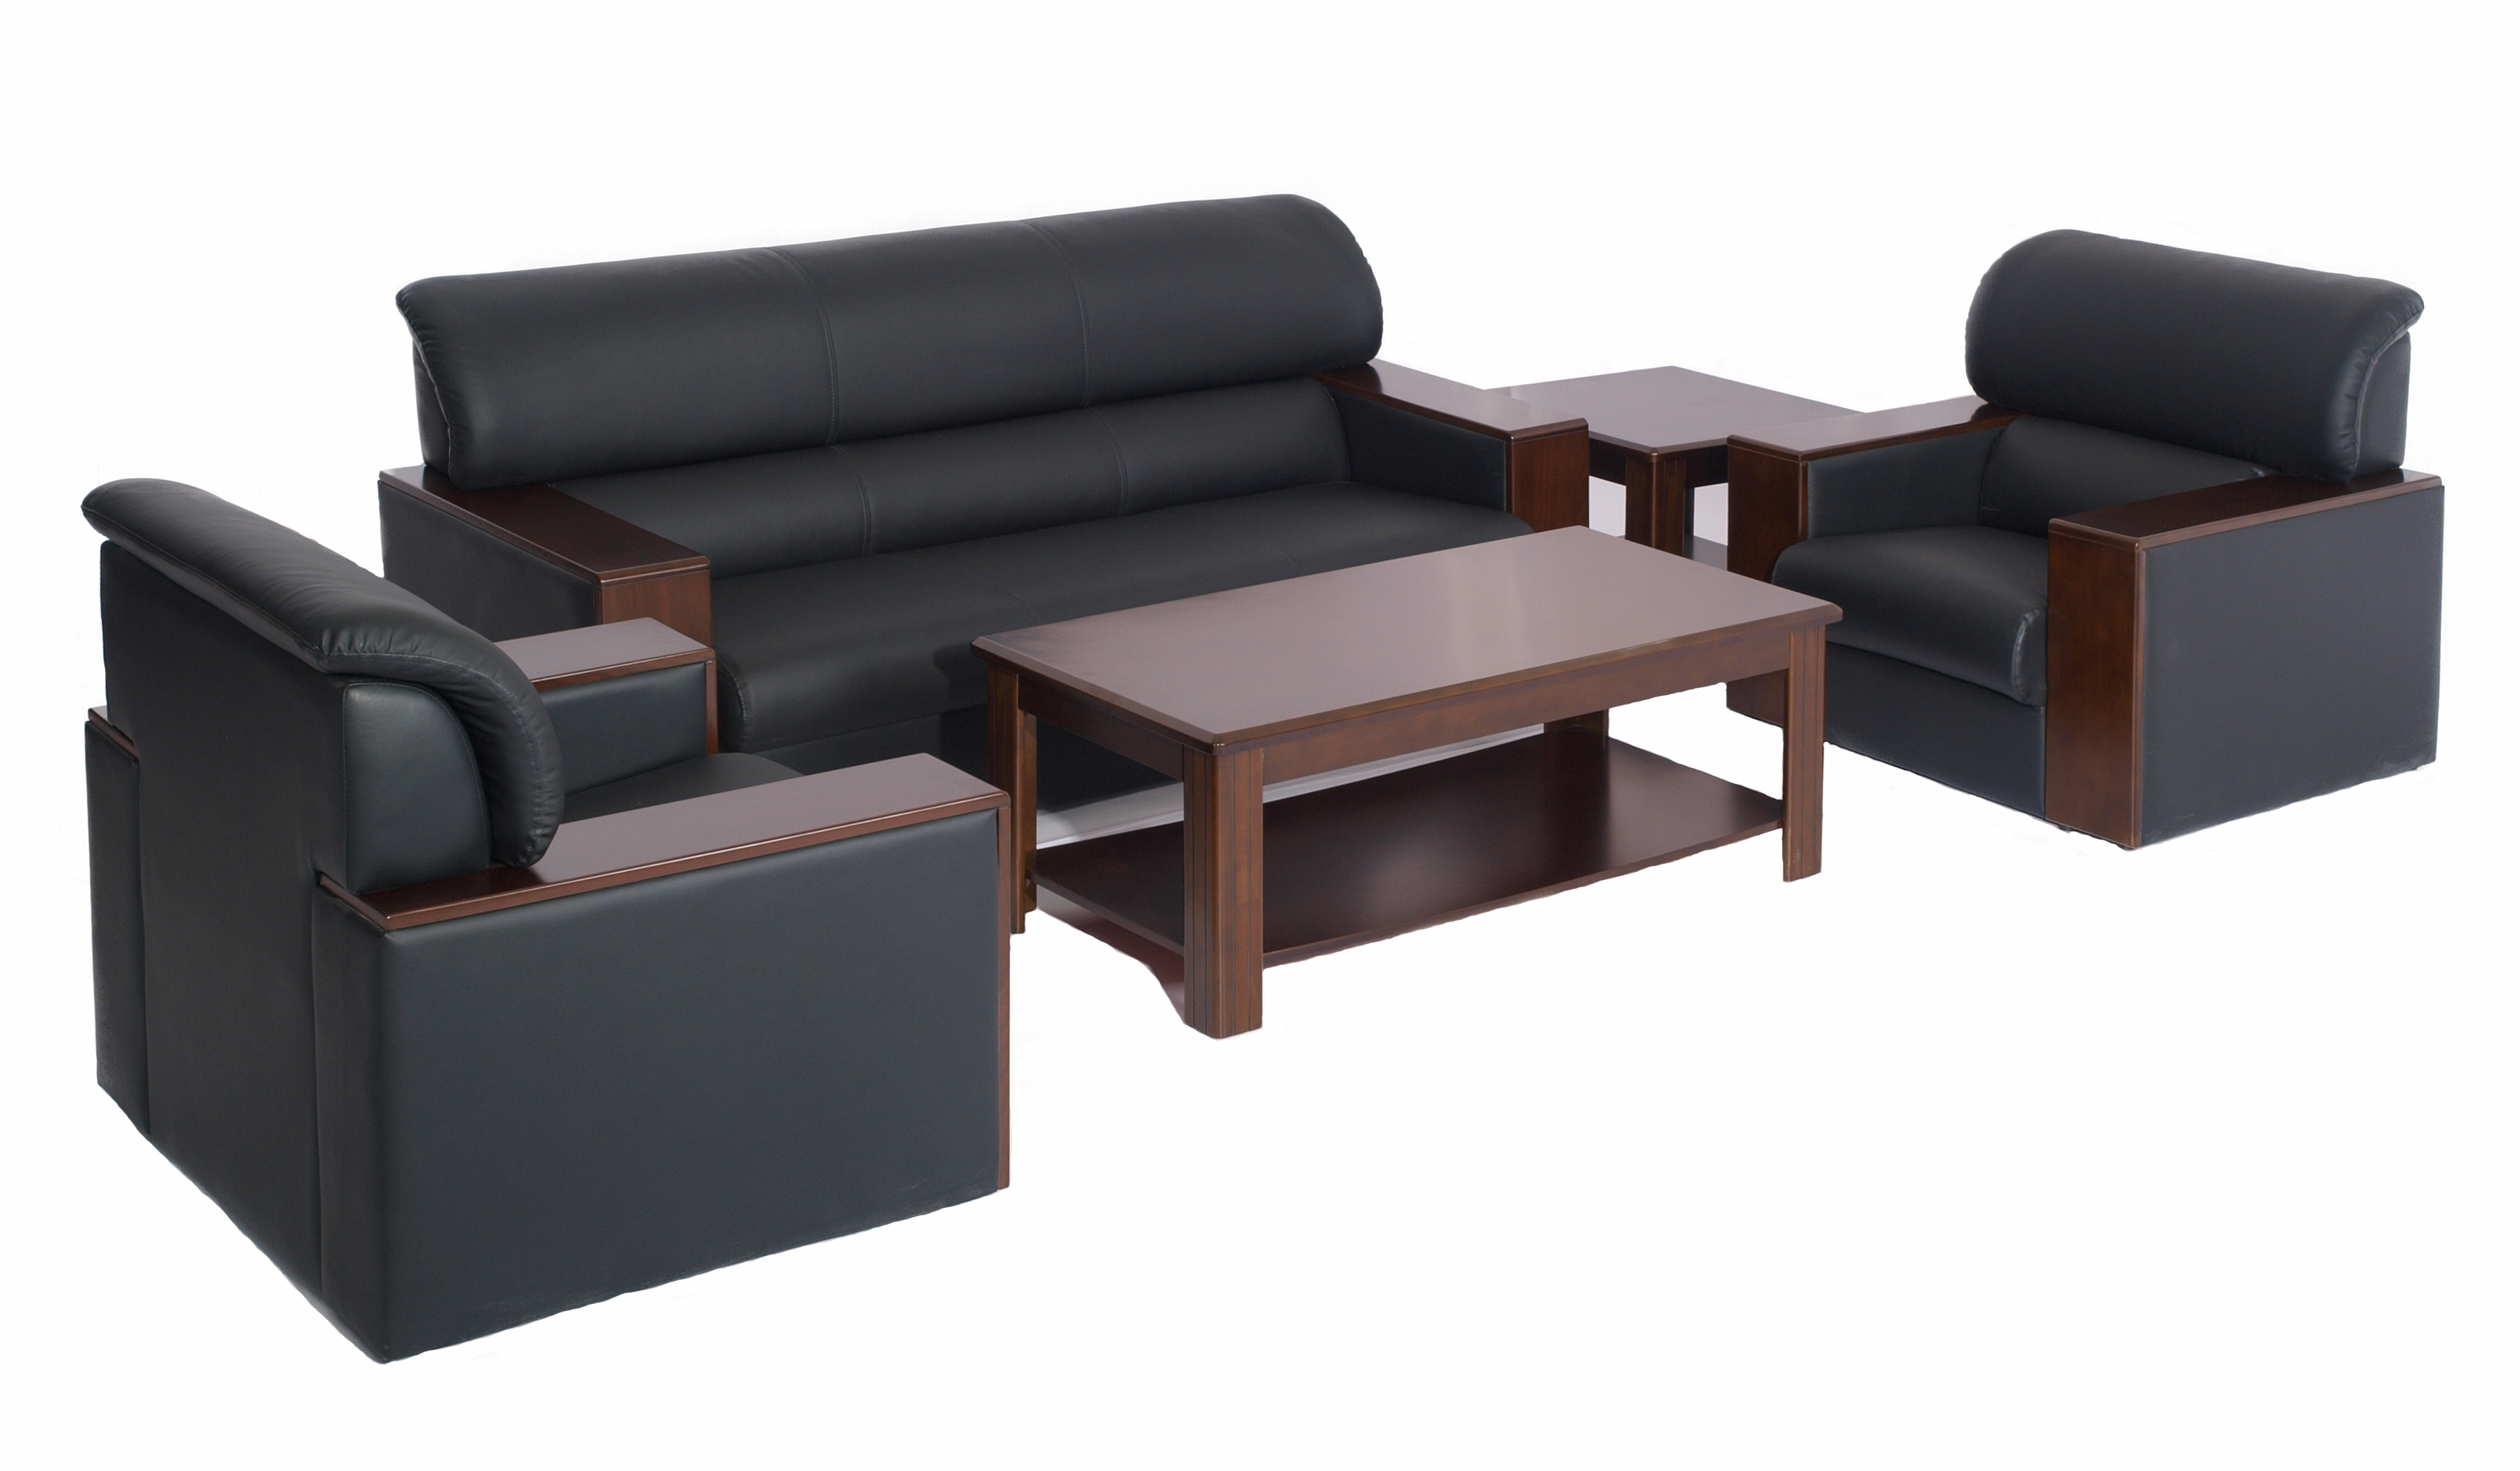 Office Sofas for Newest Best Office Sofa 98 For Your Sofas And Couches Ideas With Office Sofa